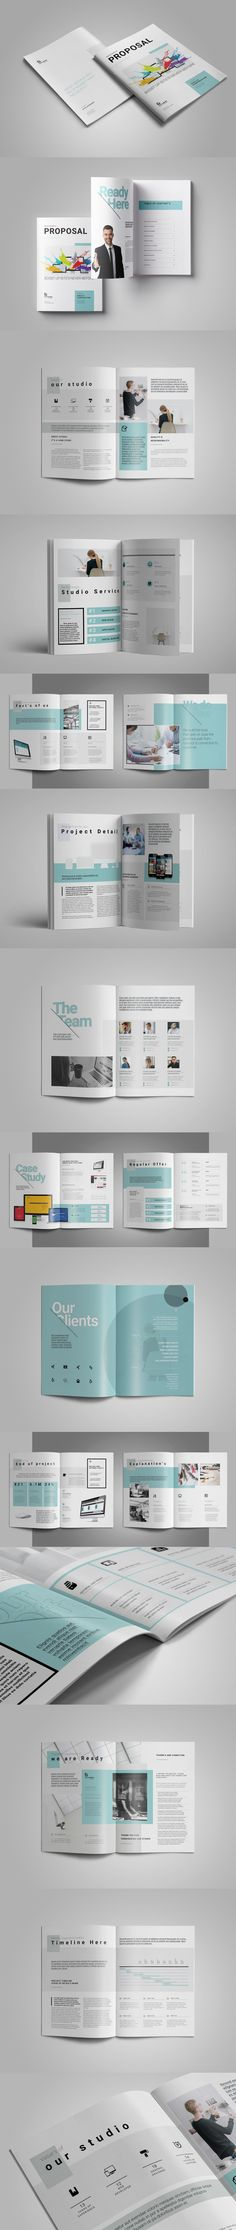 Template Formal Letter%0A Clean Proposal Template InDesign INDD     Pages  Two different Sizes A   and US Letter